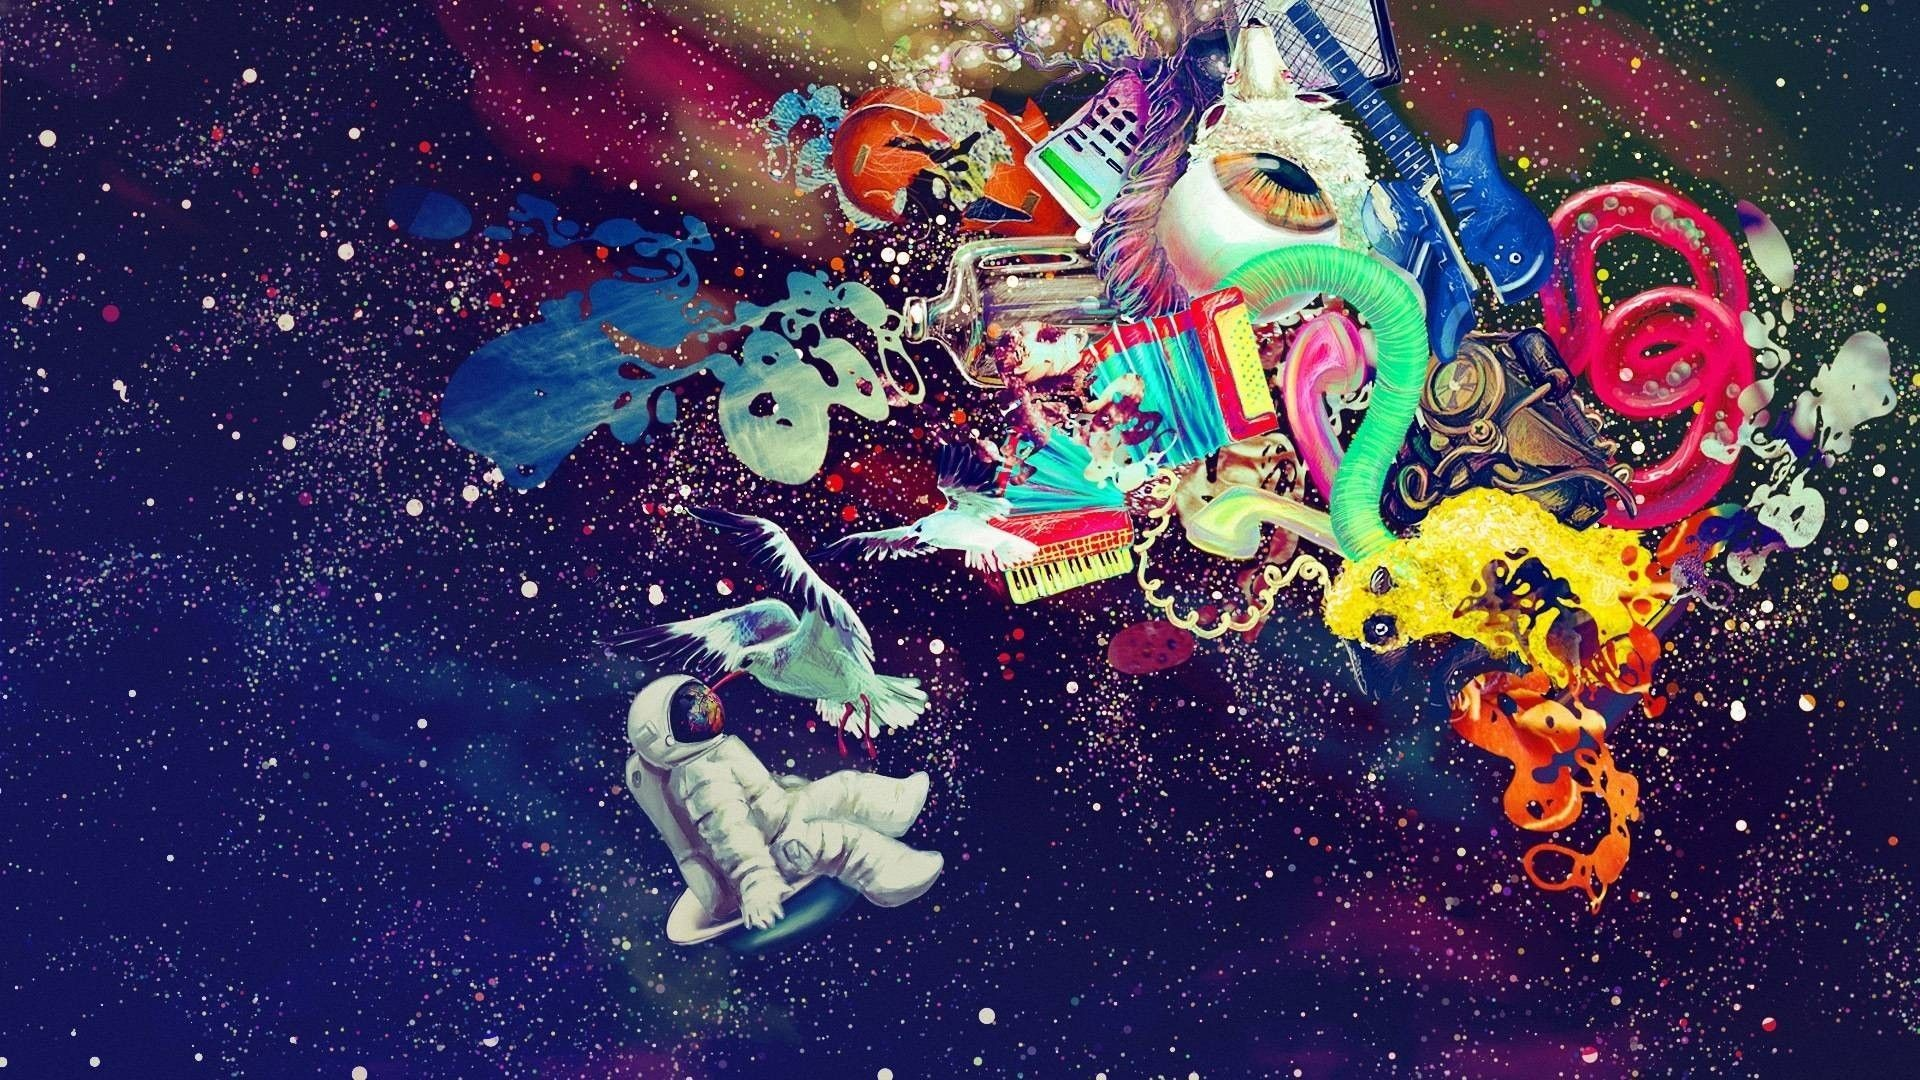 Res: 1920x1080, Trippy Art Desktop Wallpaper | Best HD Wallpapers